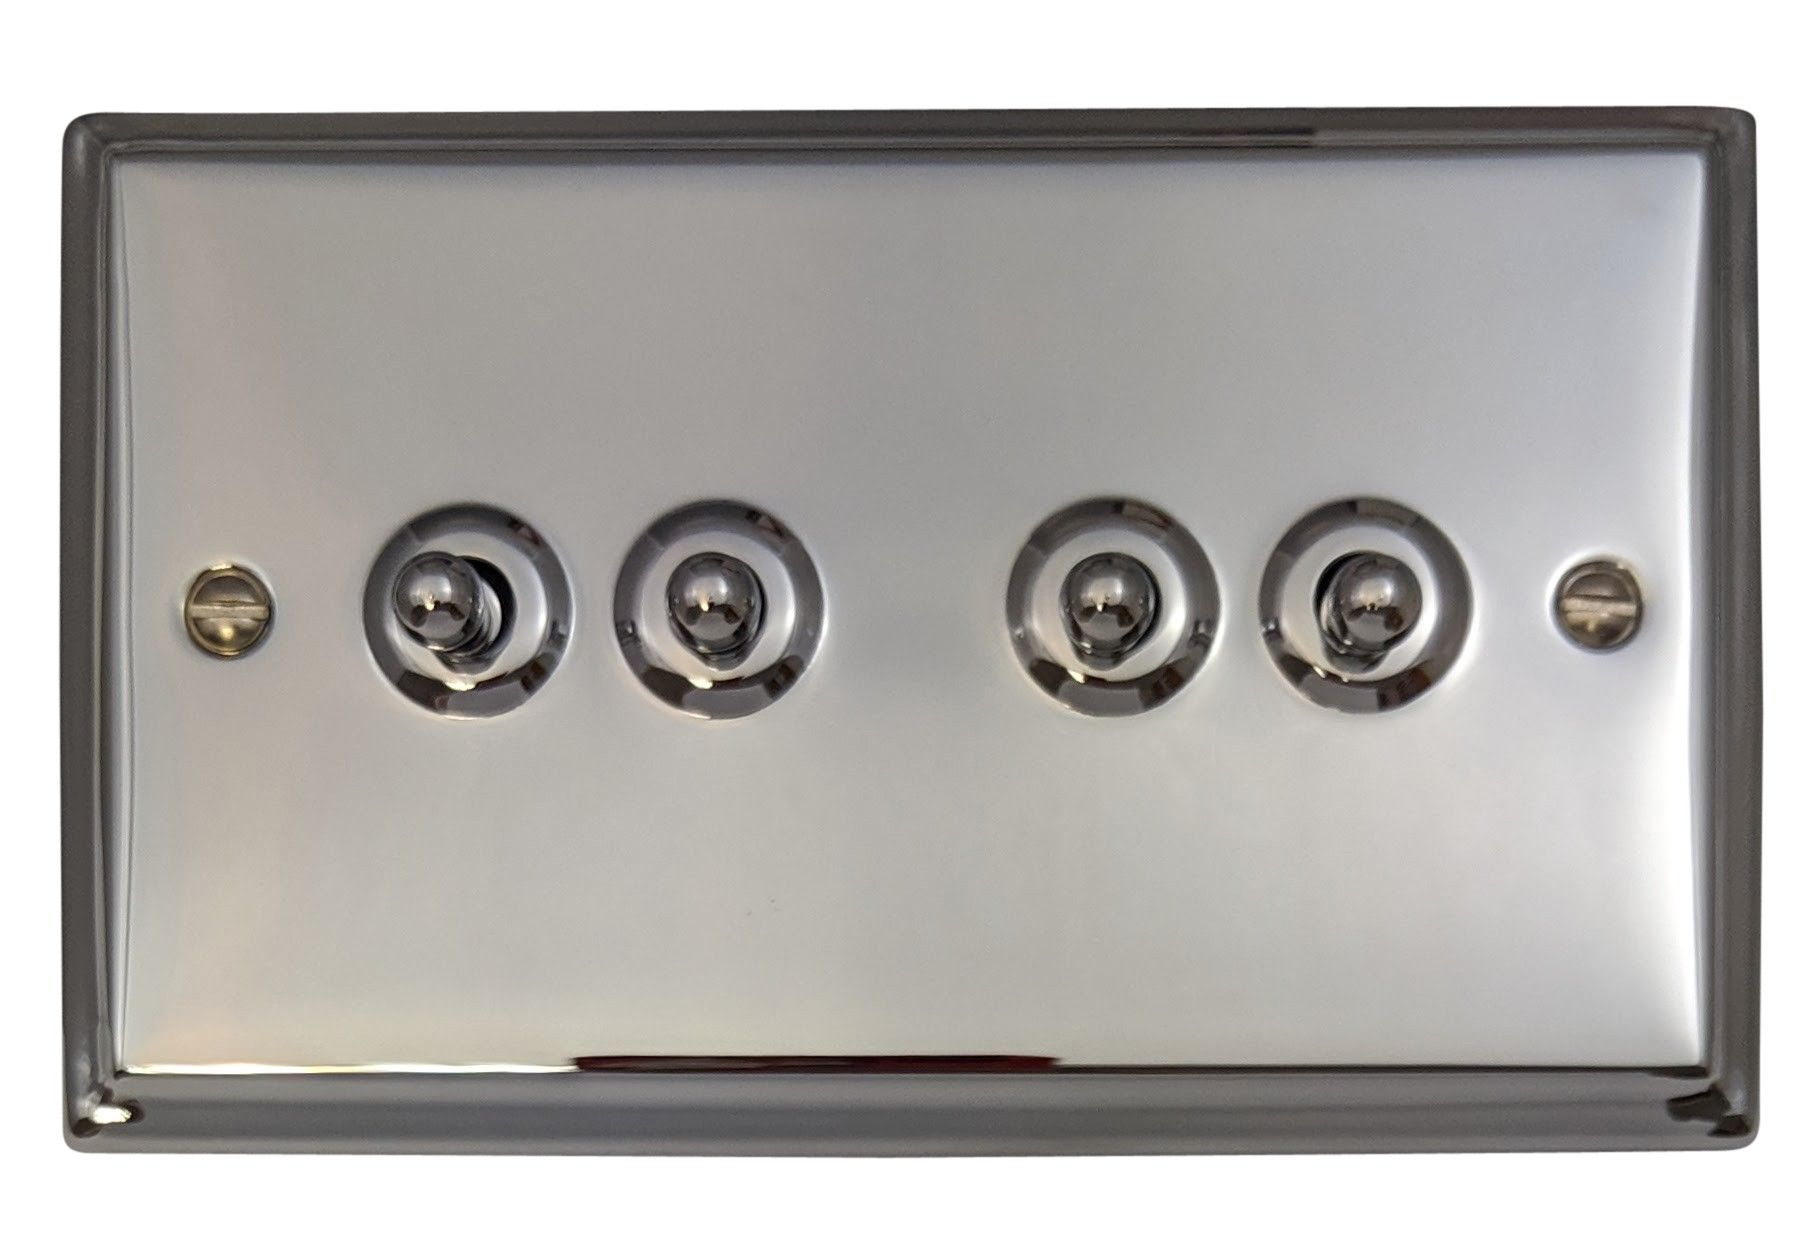 G&H DC284 Deco Plate Polished Chrome 4 Gang 1 or 2 Way Toggle Light Switch